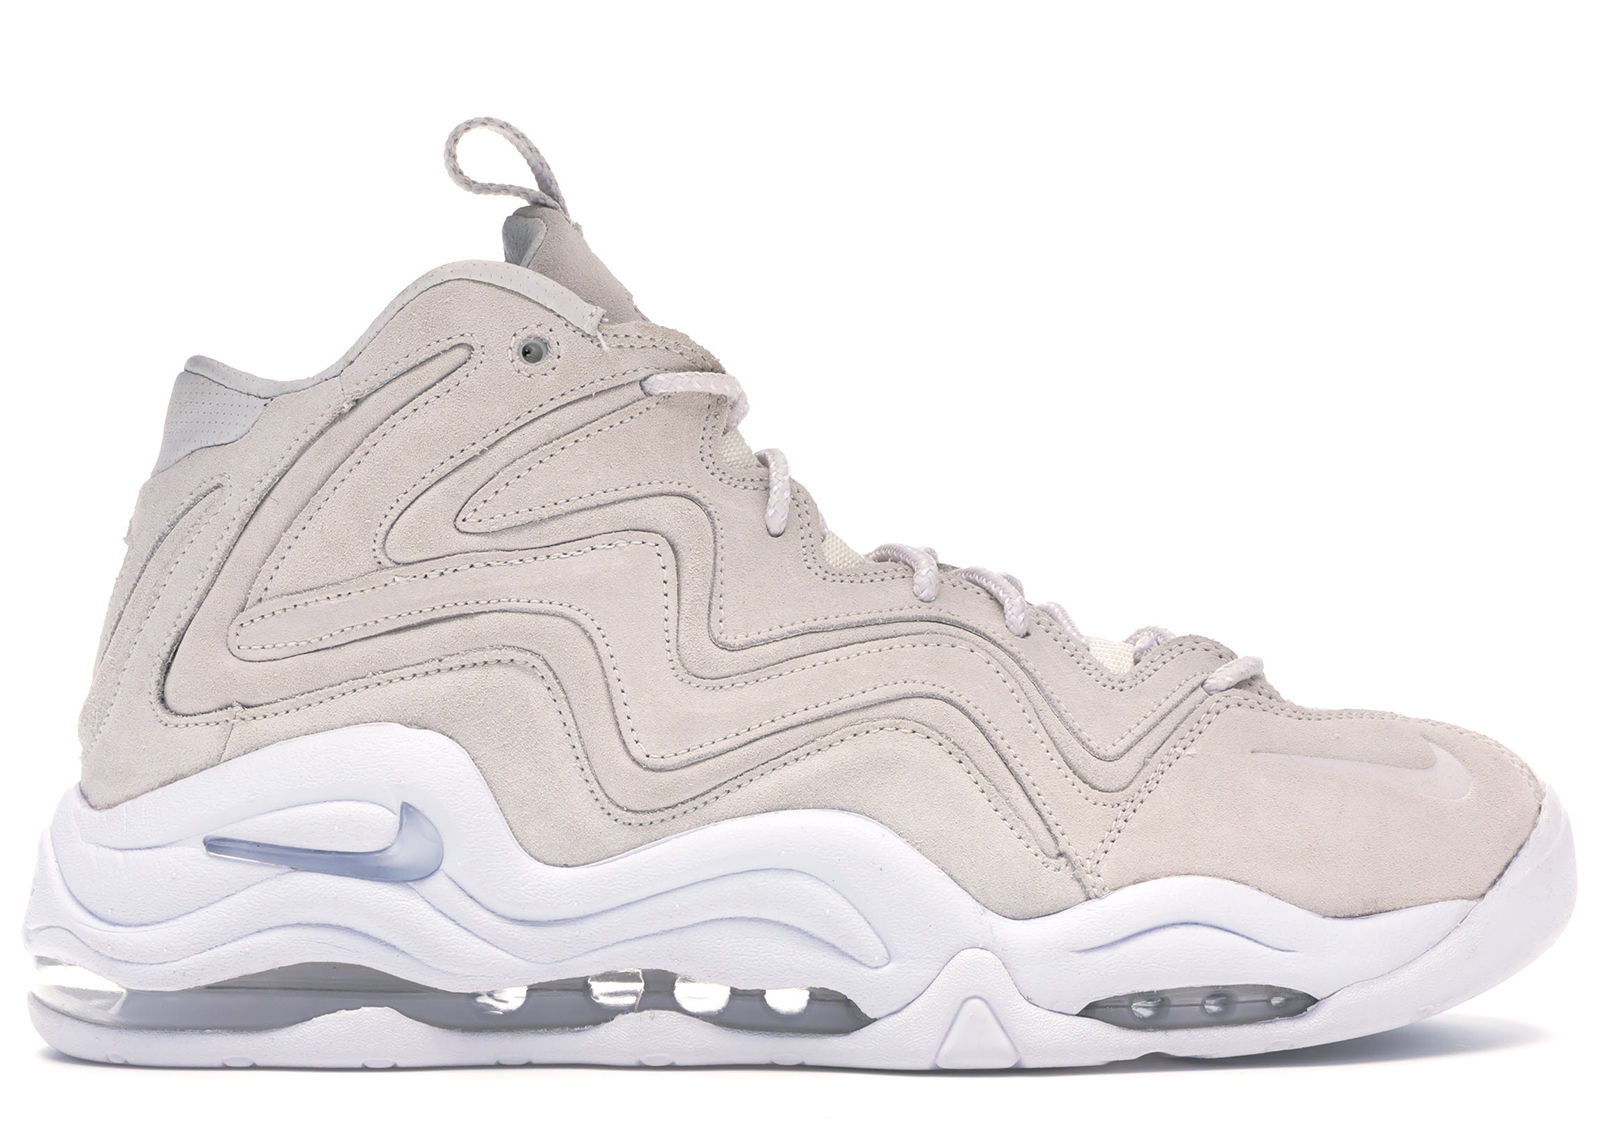 Nike Air Pippen QS Kith Friends and